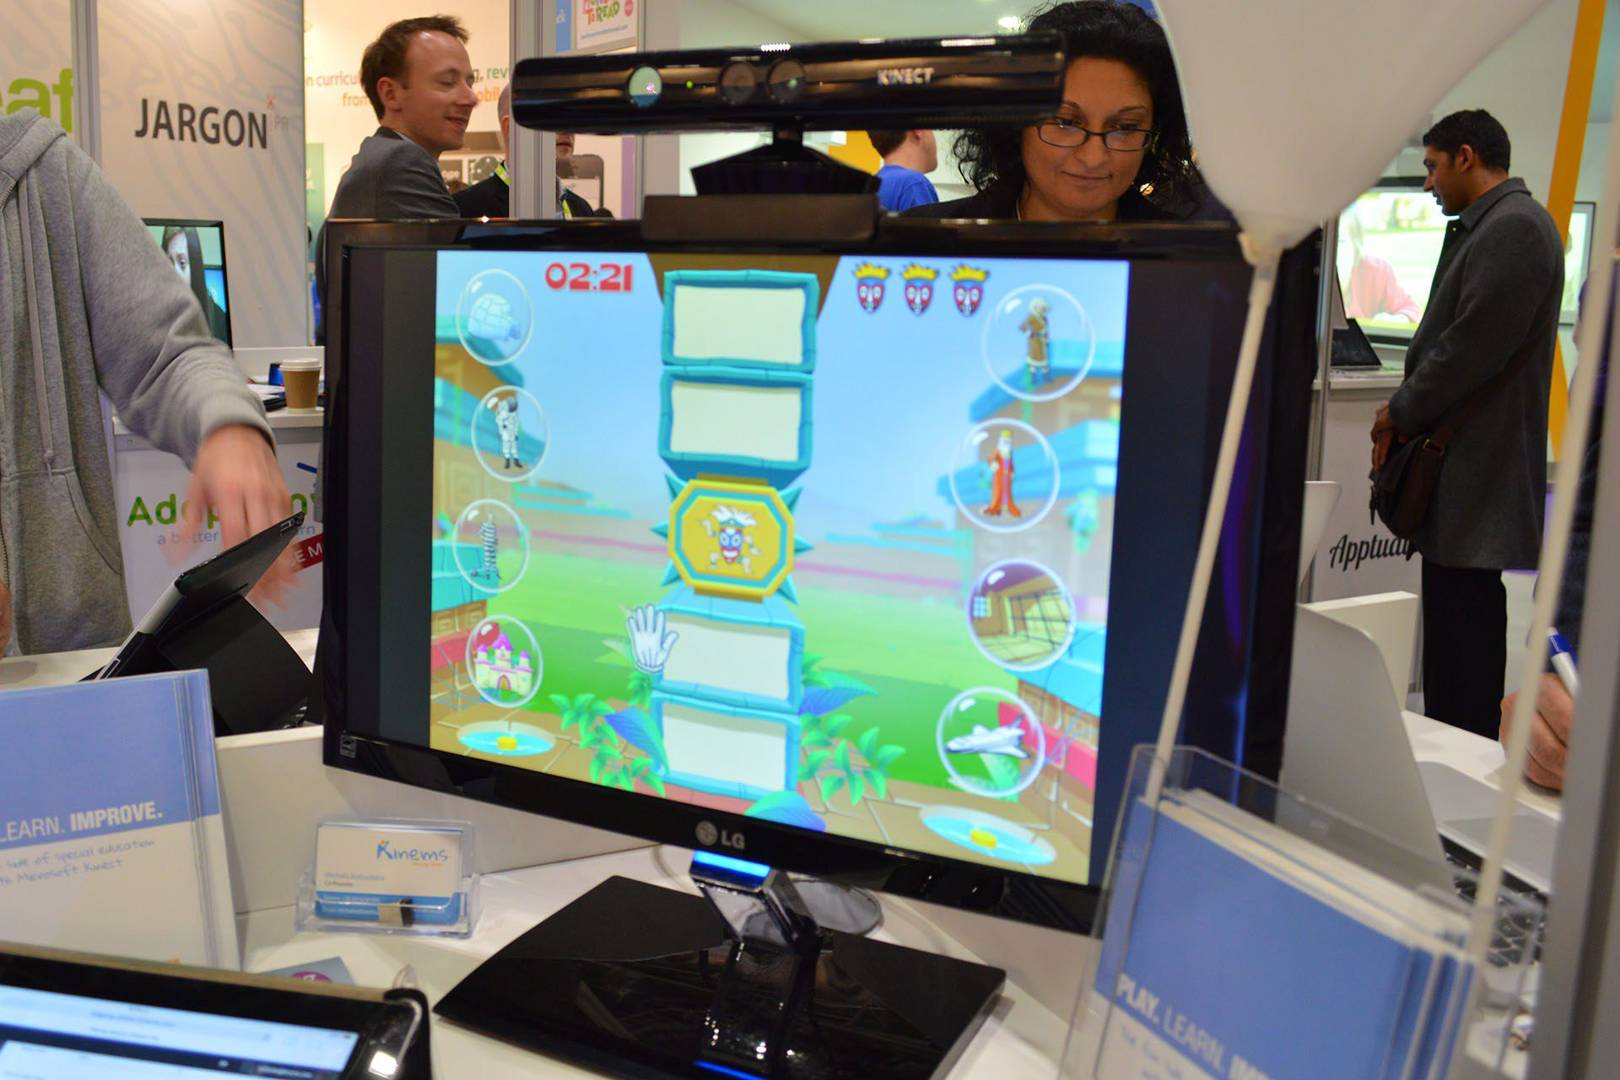 Kinect-based games shown to have positive impact on children